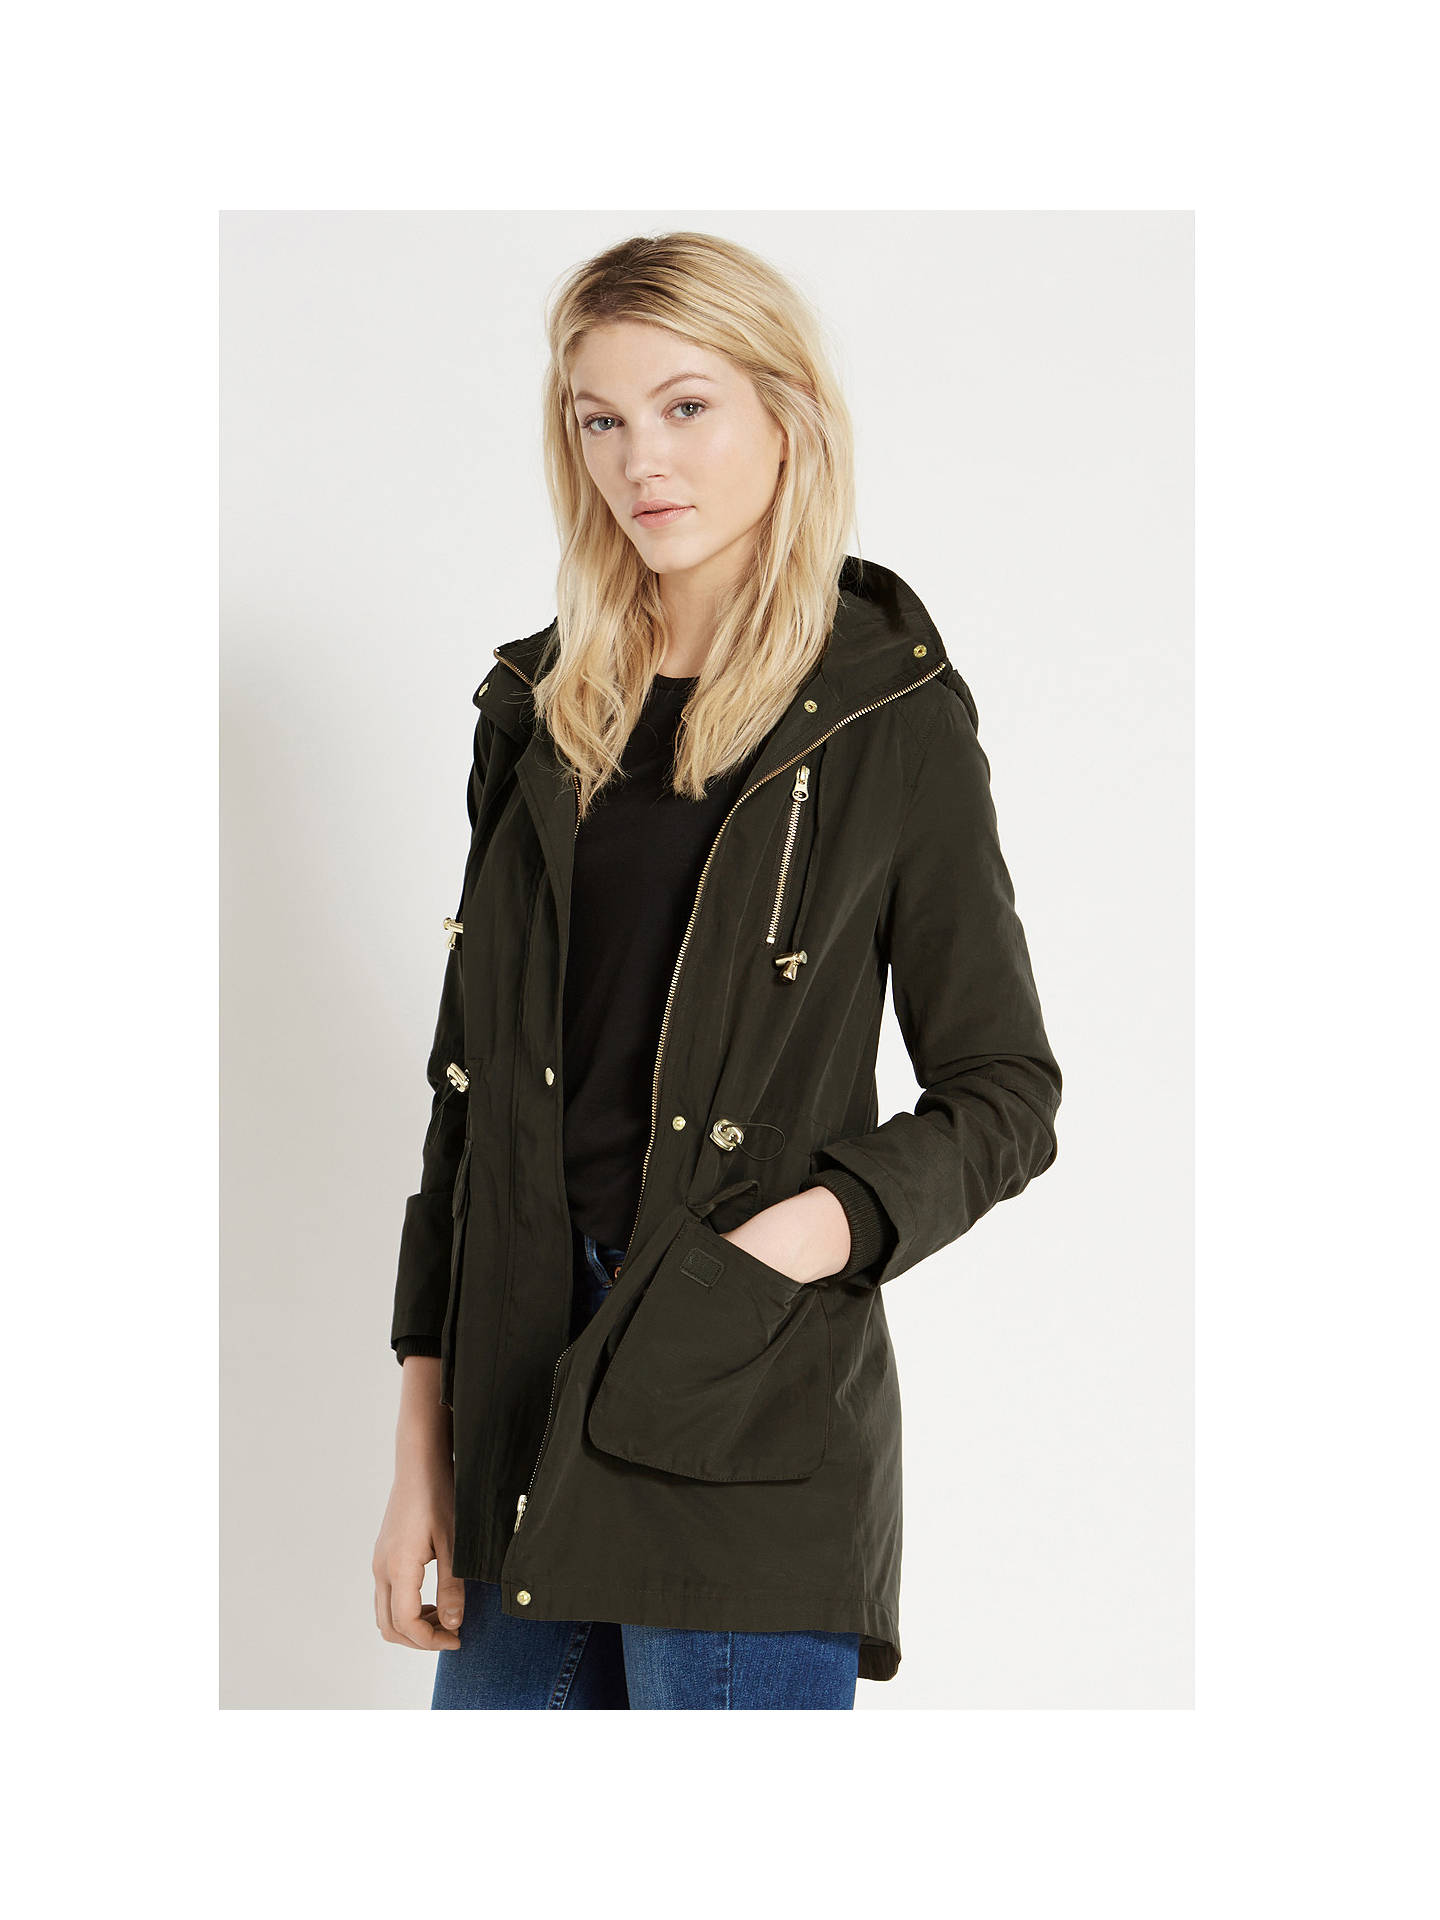 35a30117a73f ... Buy Oasis Charlie Lightweight Parka Jacket, Khaki, S Online at  johnlewis.com ...